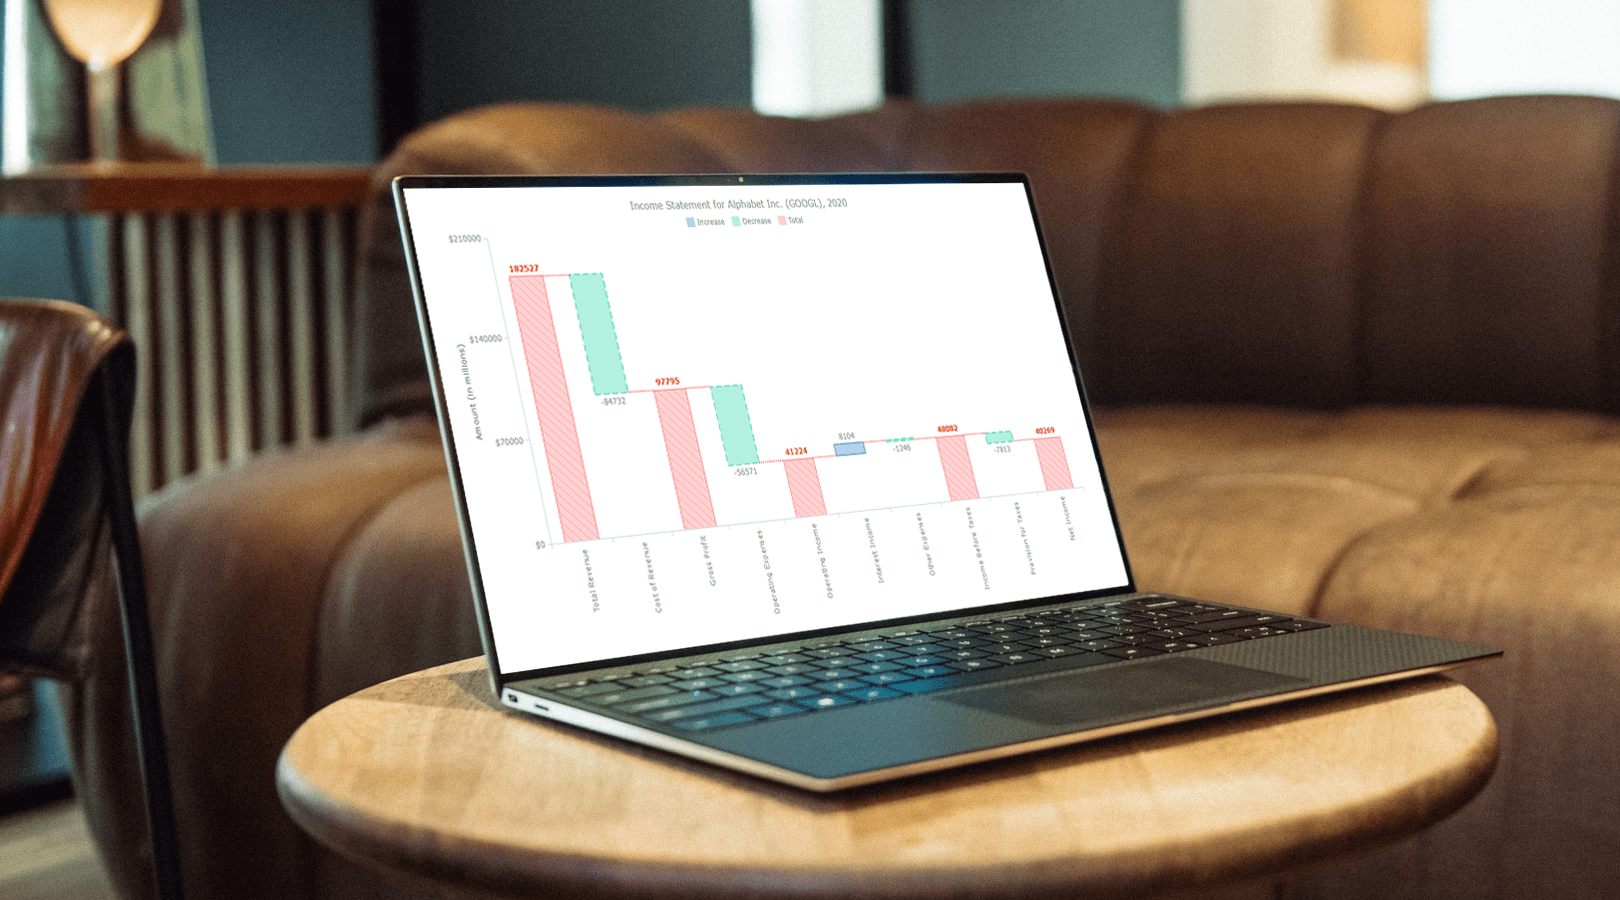 A Waterfall Chart with JS